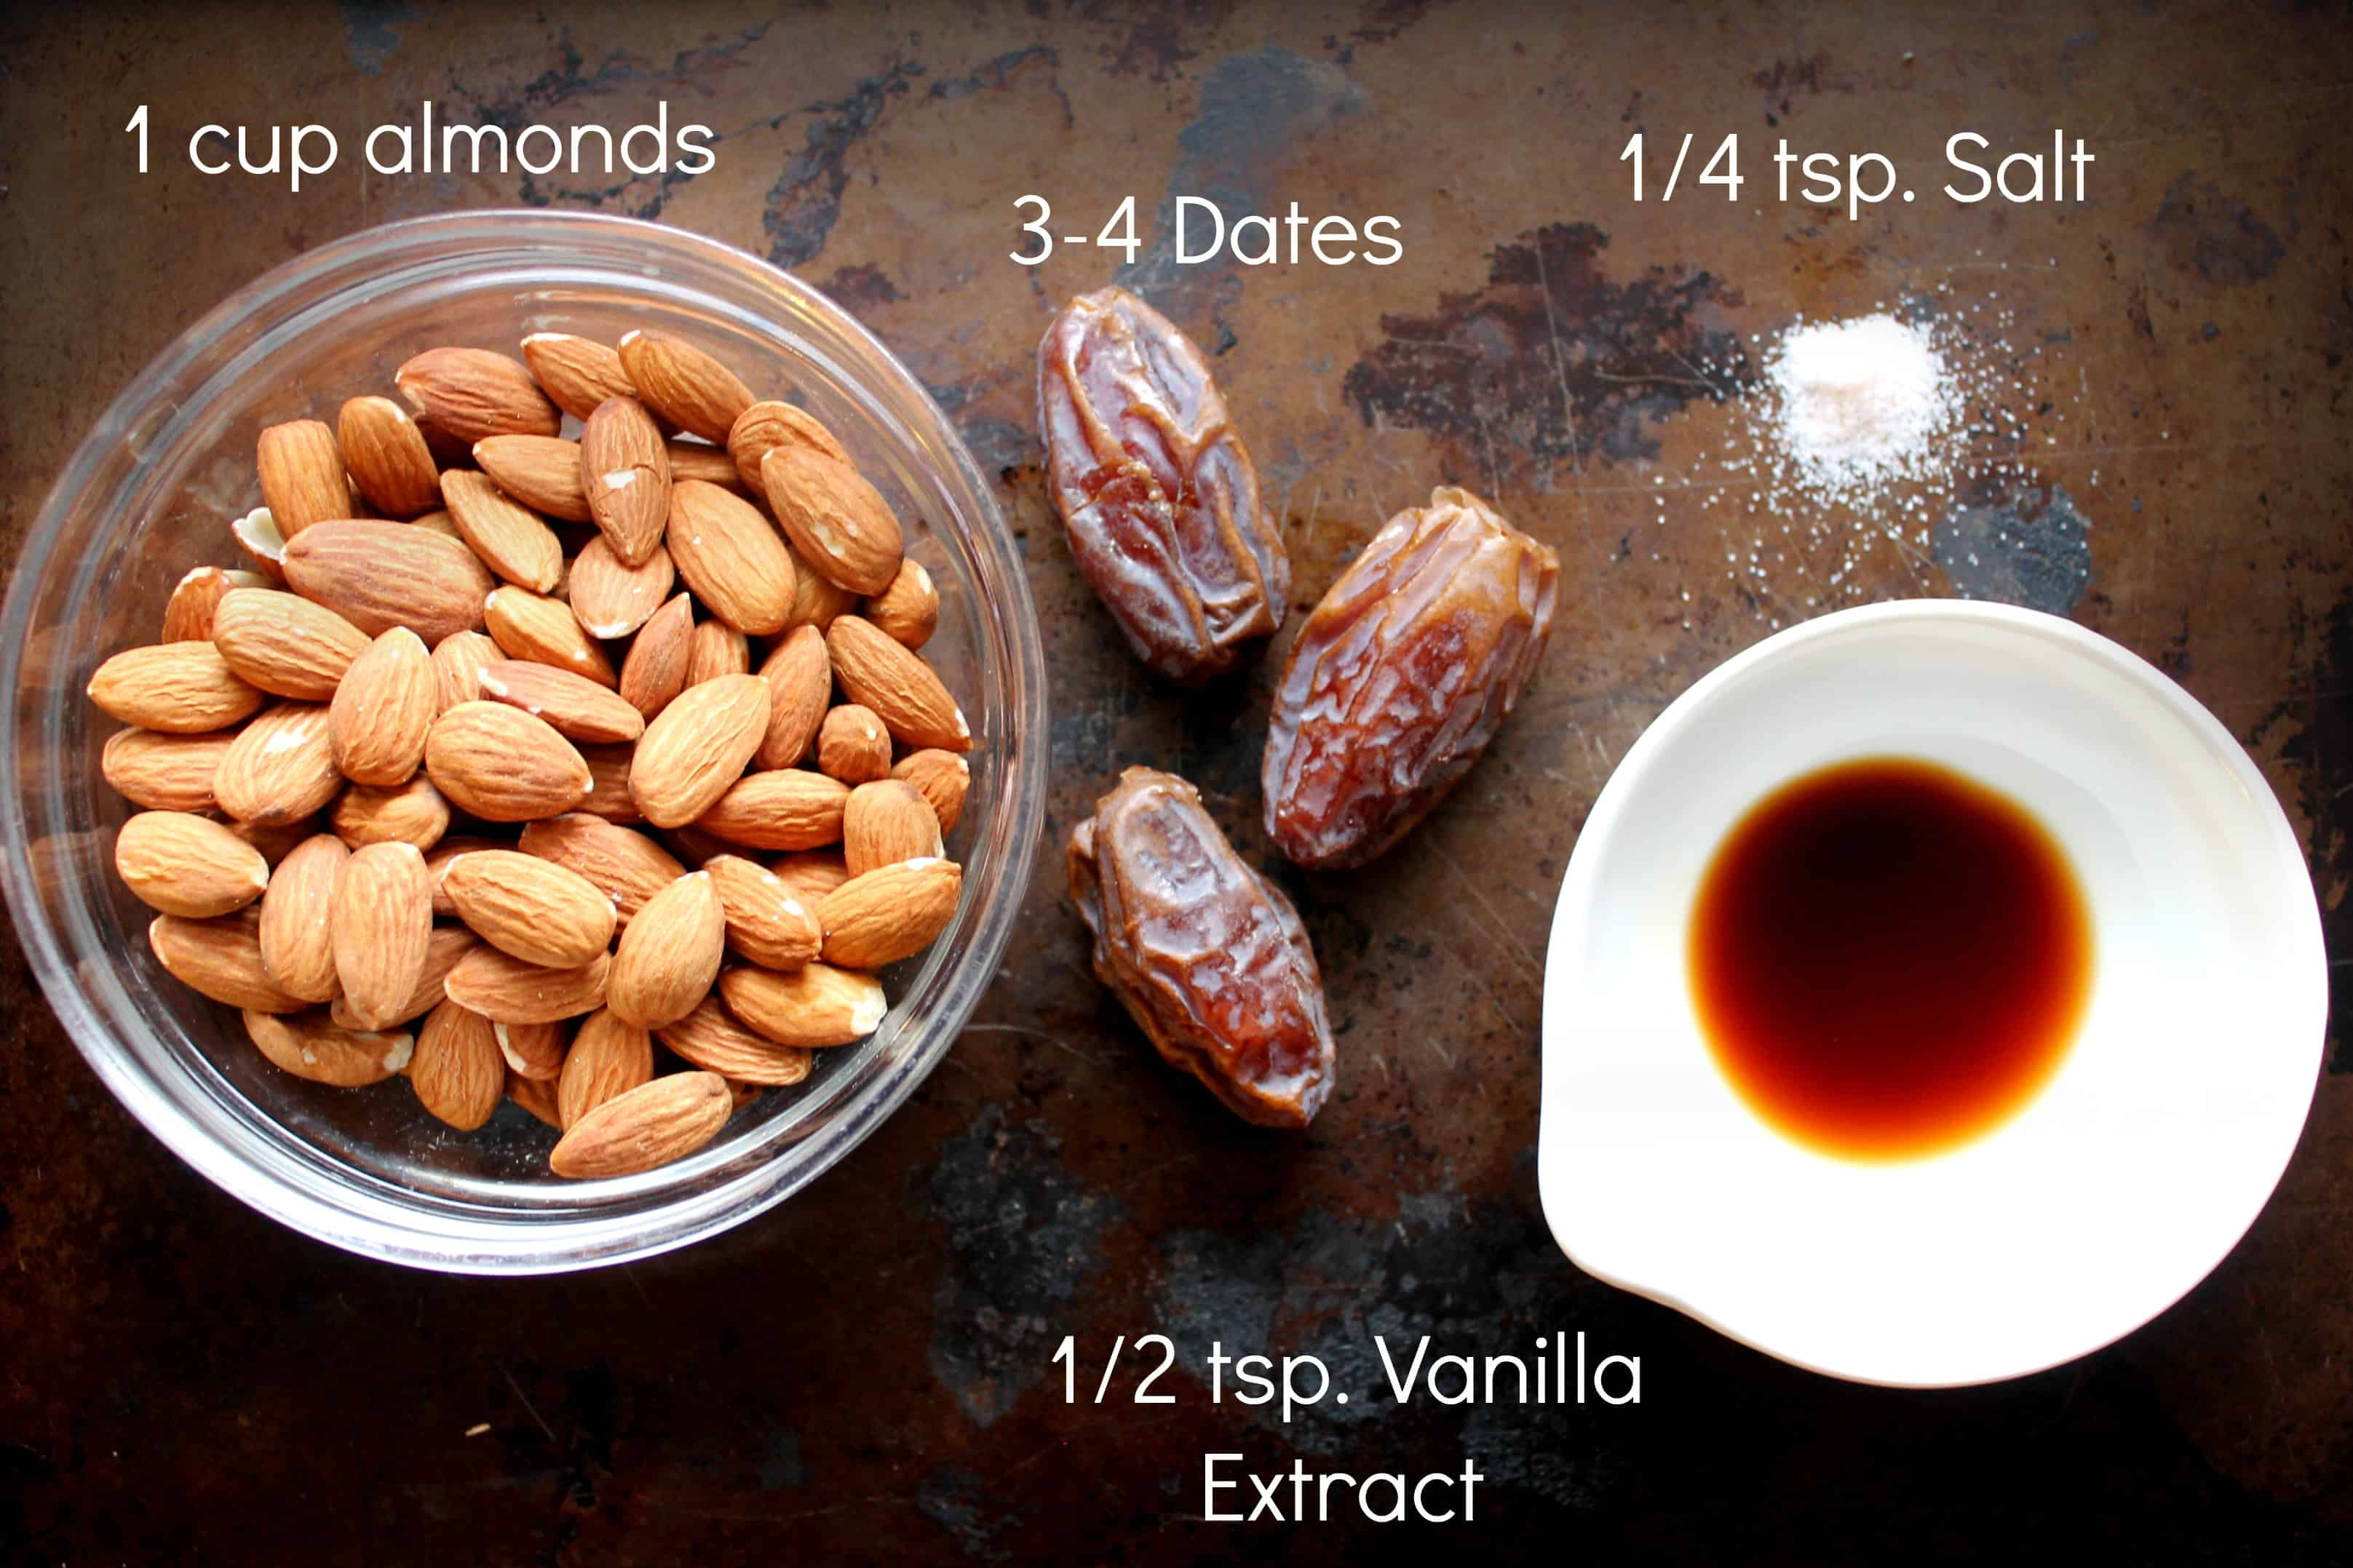 almond milk, almonds, dates, vanilla, salt, ingredients, almond milk DIY